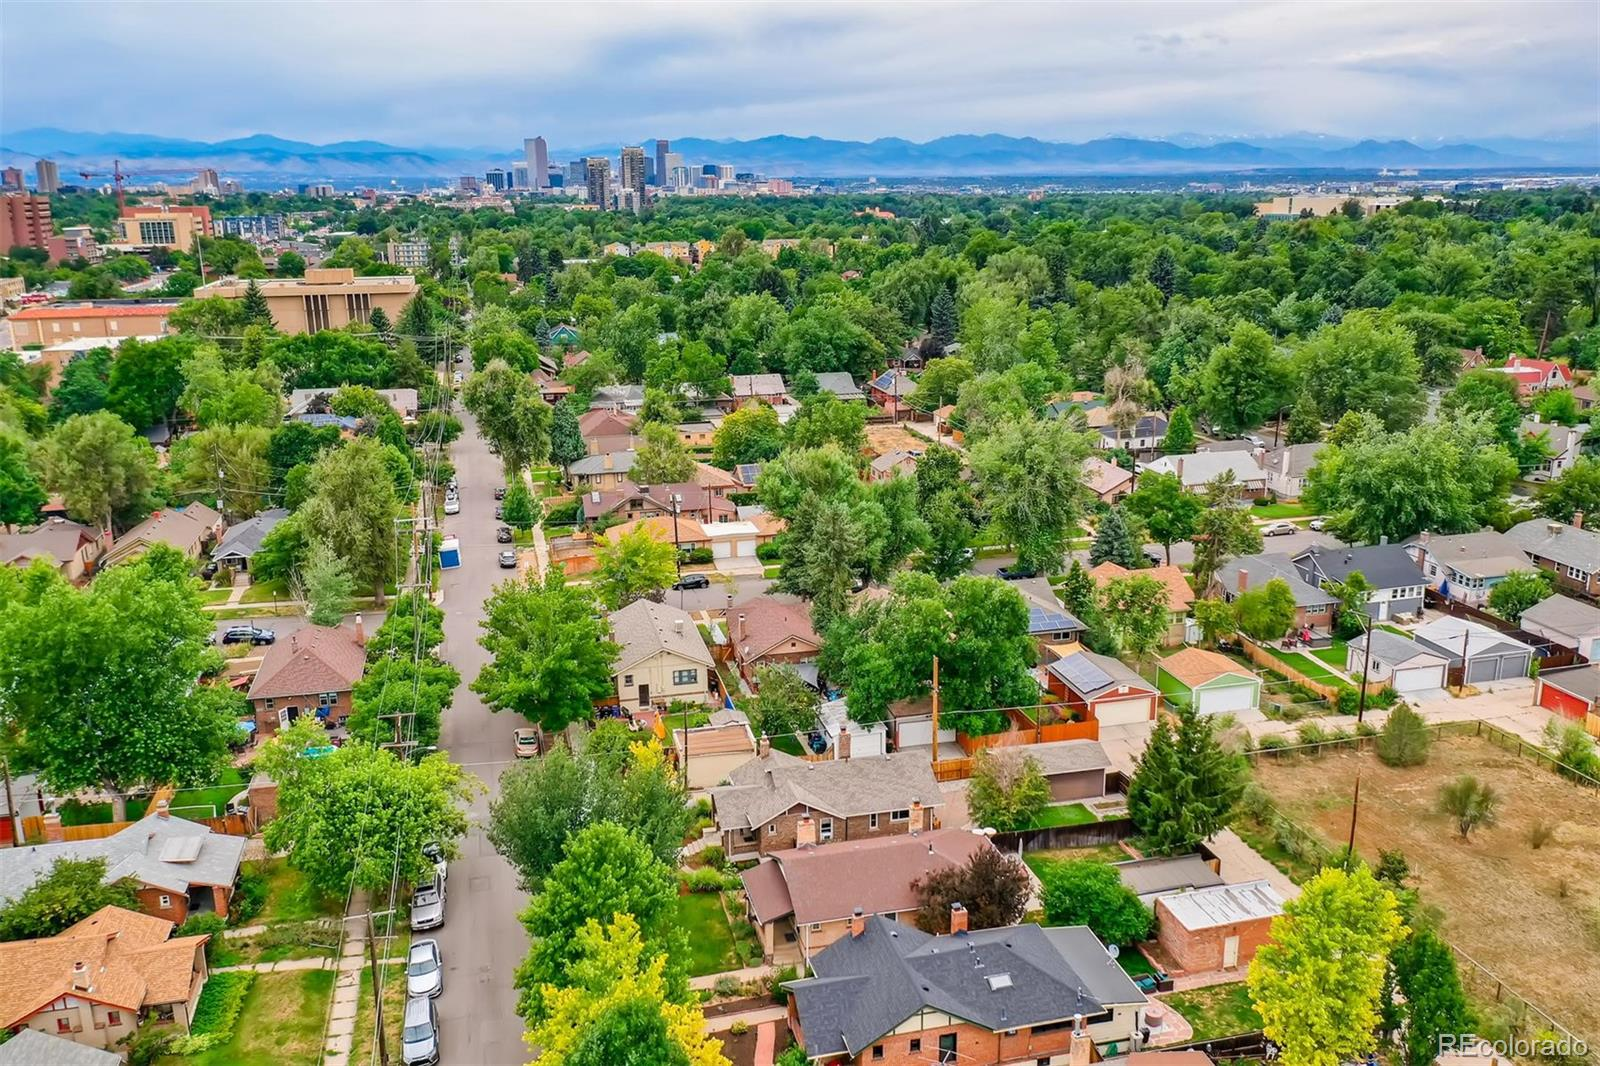 MLS# 6242381 - 2 - 4623 E 16th Avenue, Denver, CO 80220